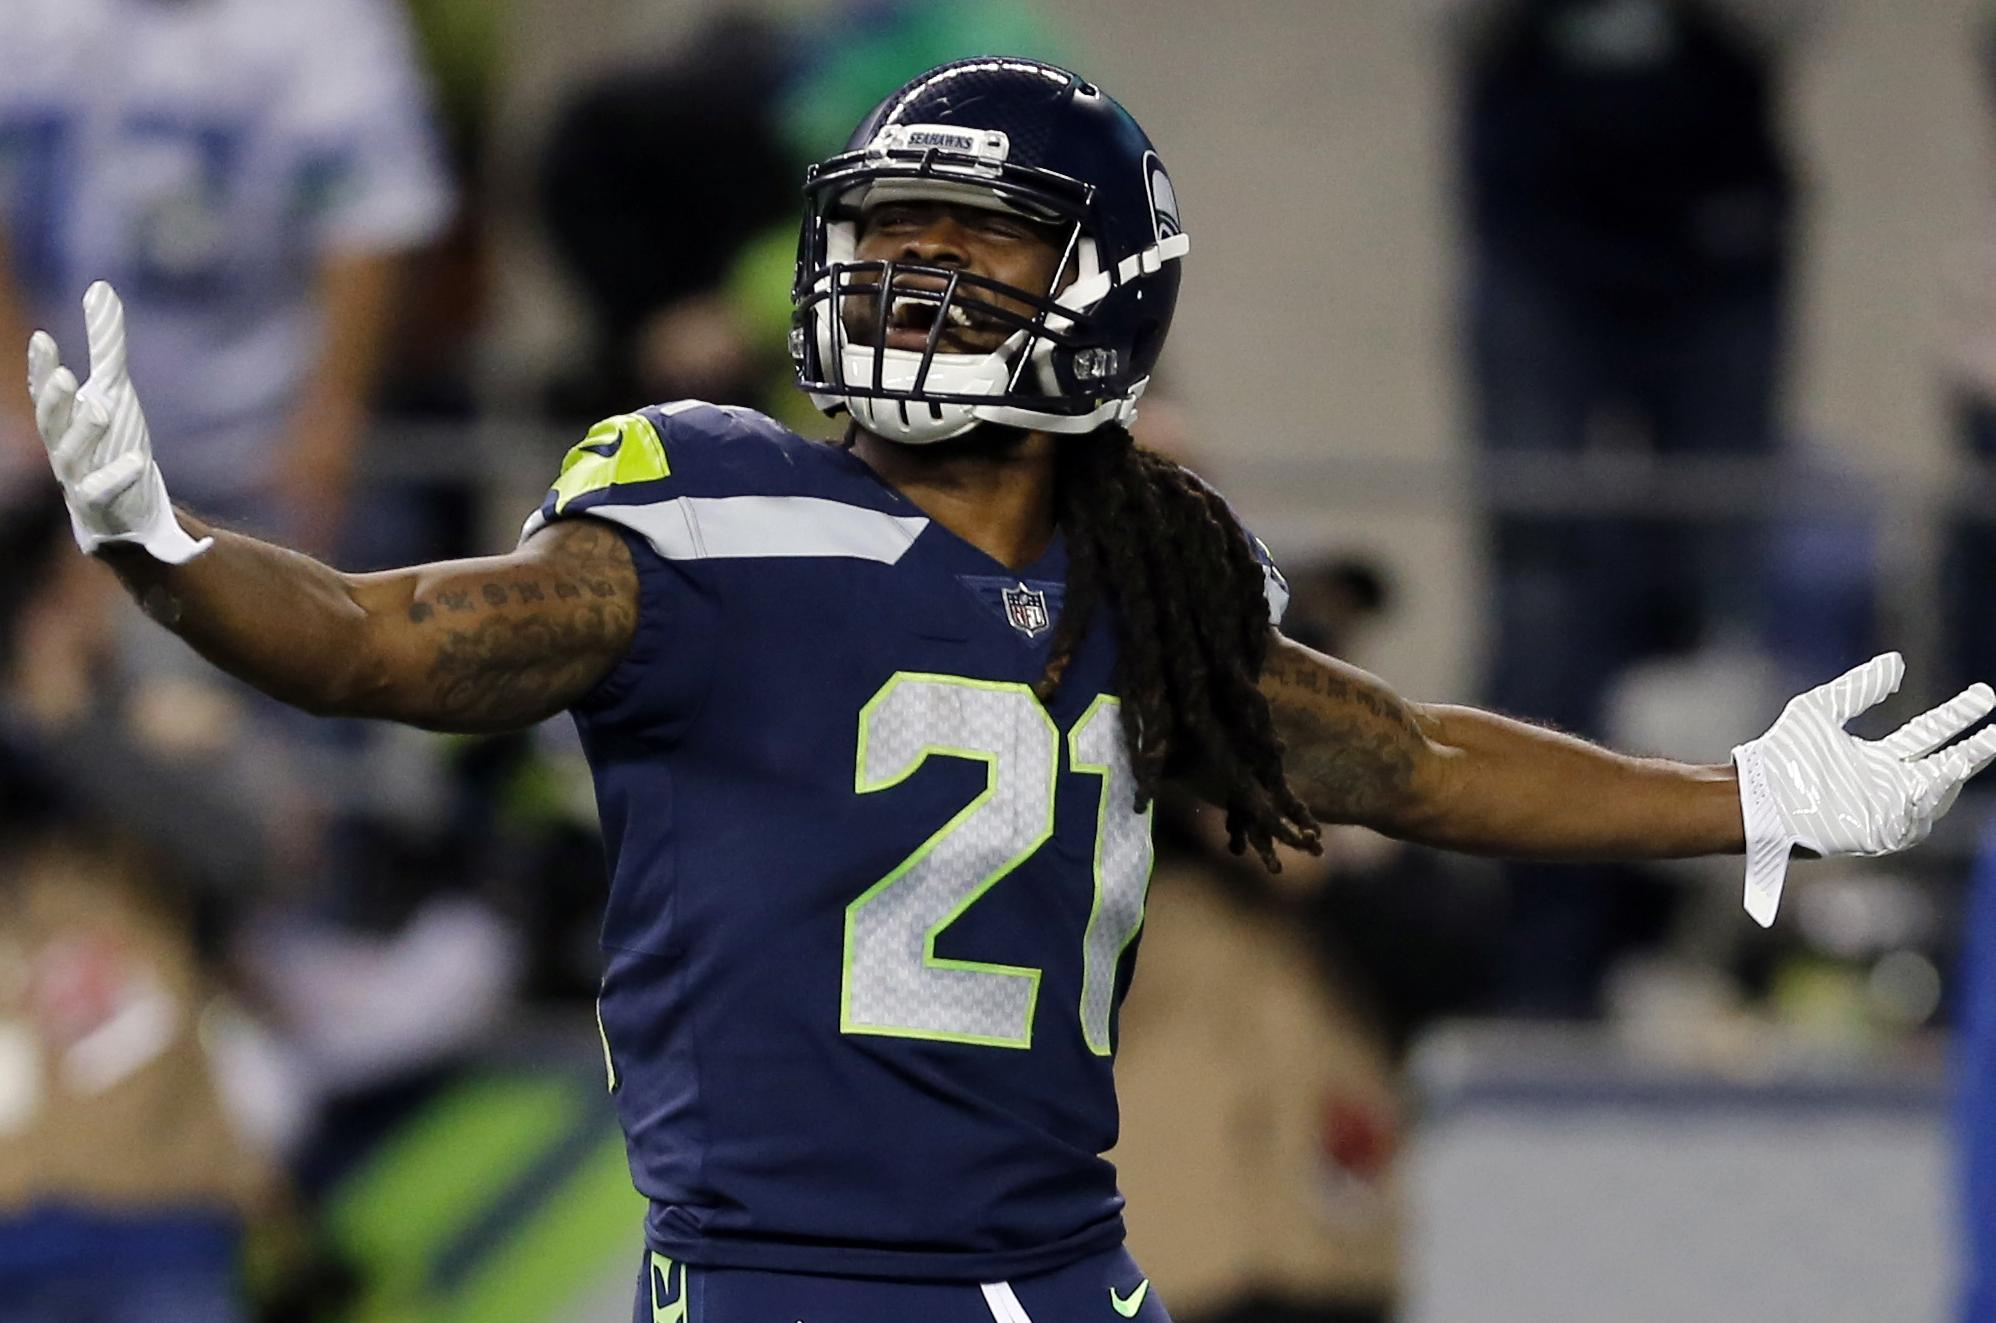 sale retailer 9b681 18b98 Like most seasons some unsung players emerging for Seahawks ...